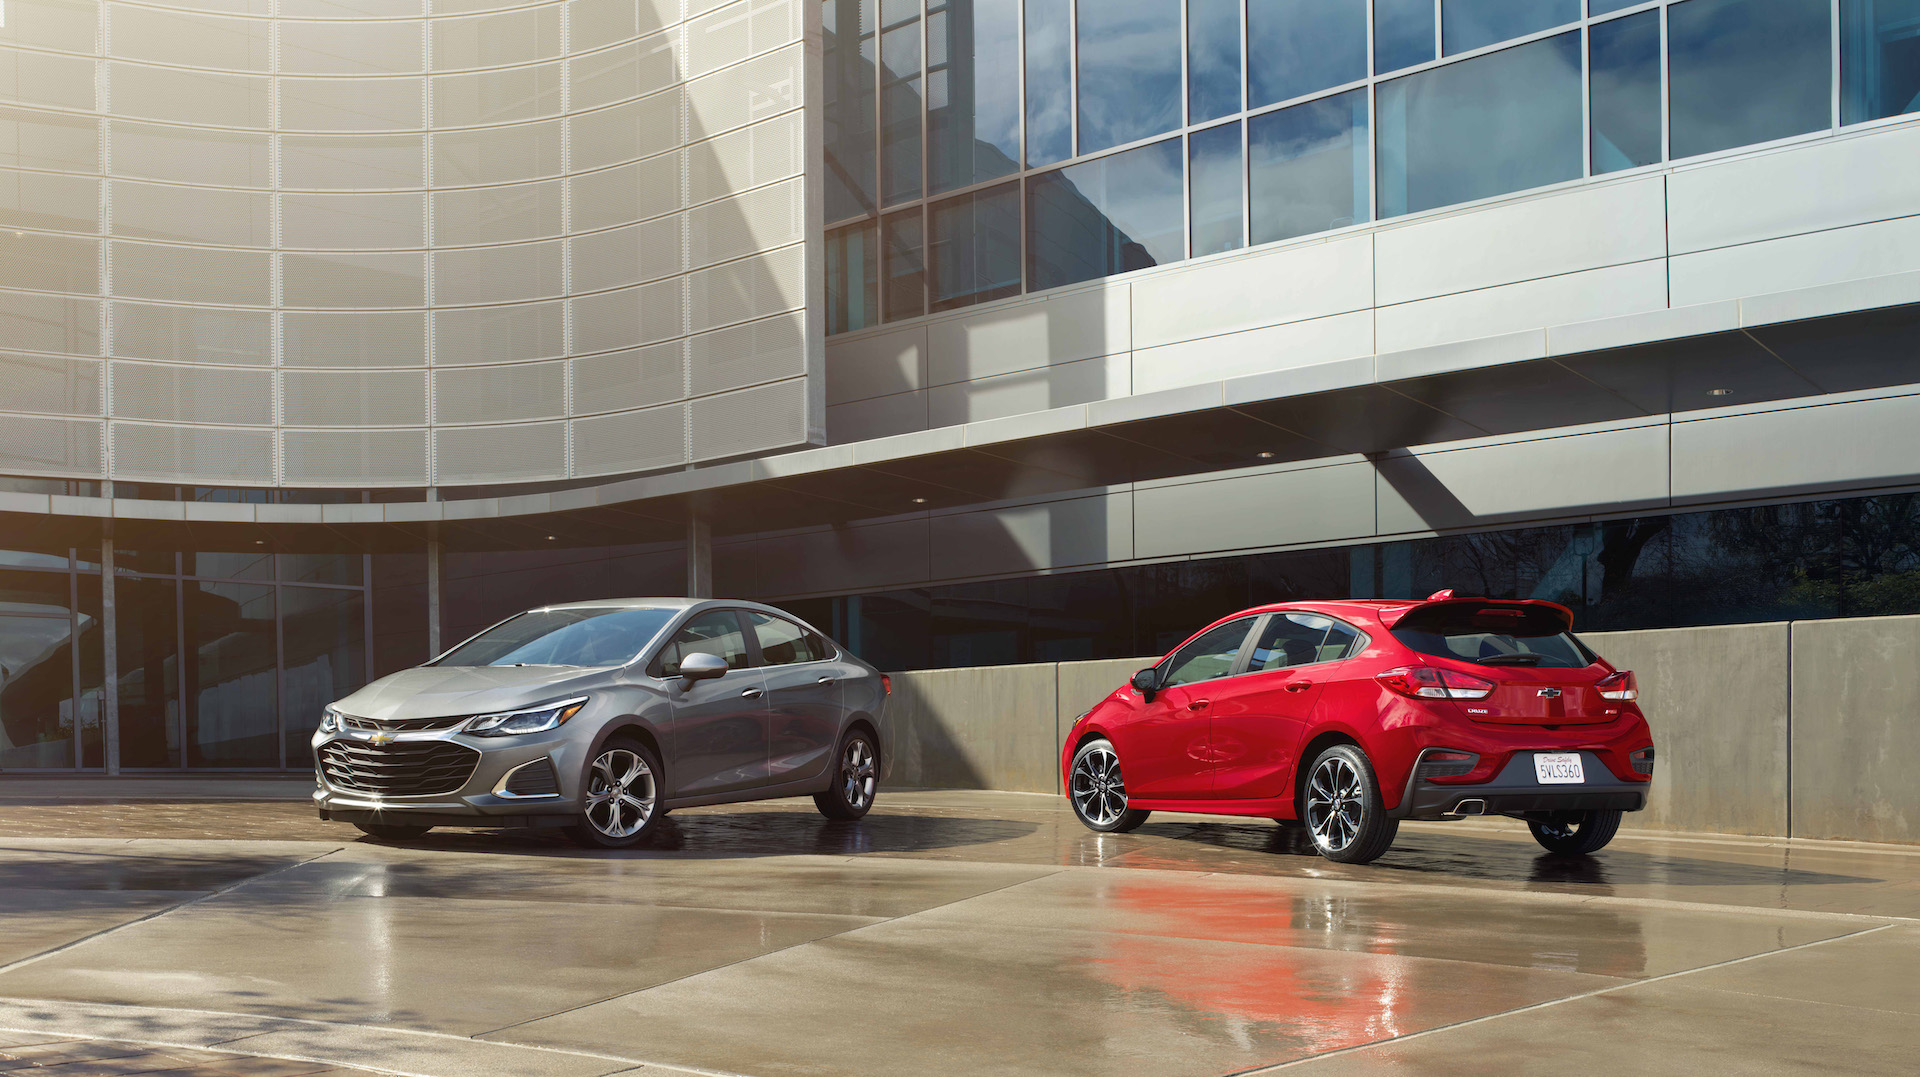 2019 Chevy Cruze S Upcoming Cvt Rated At 33 Mpg Combined Updated